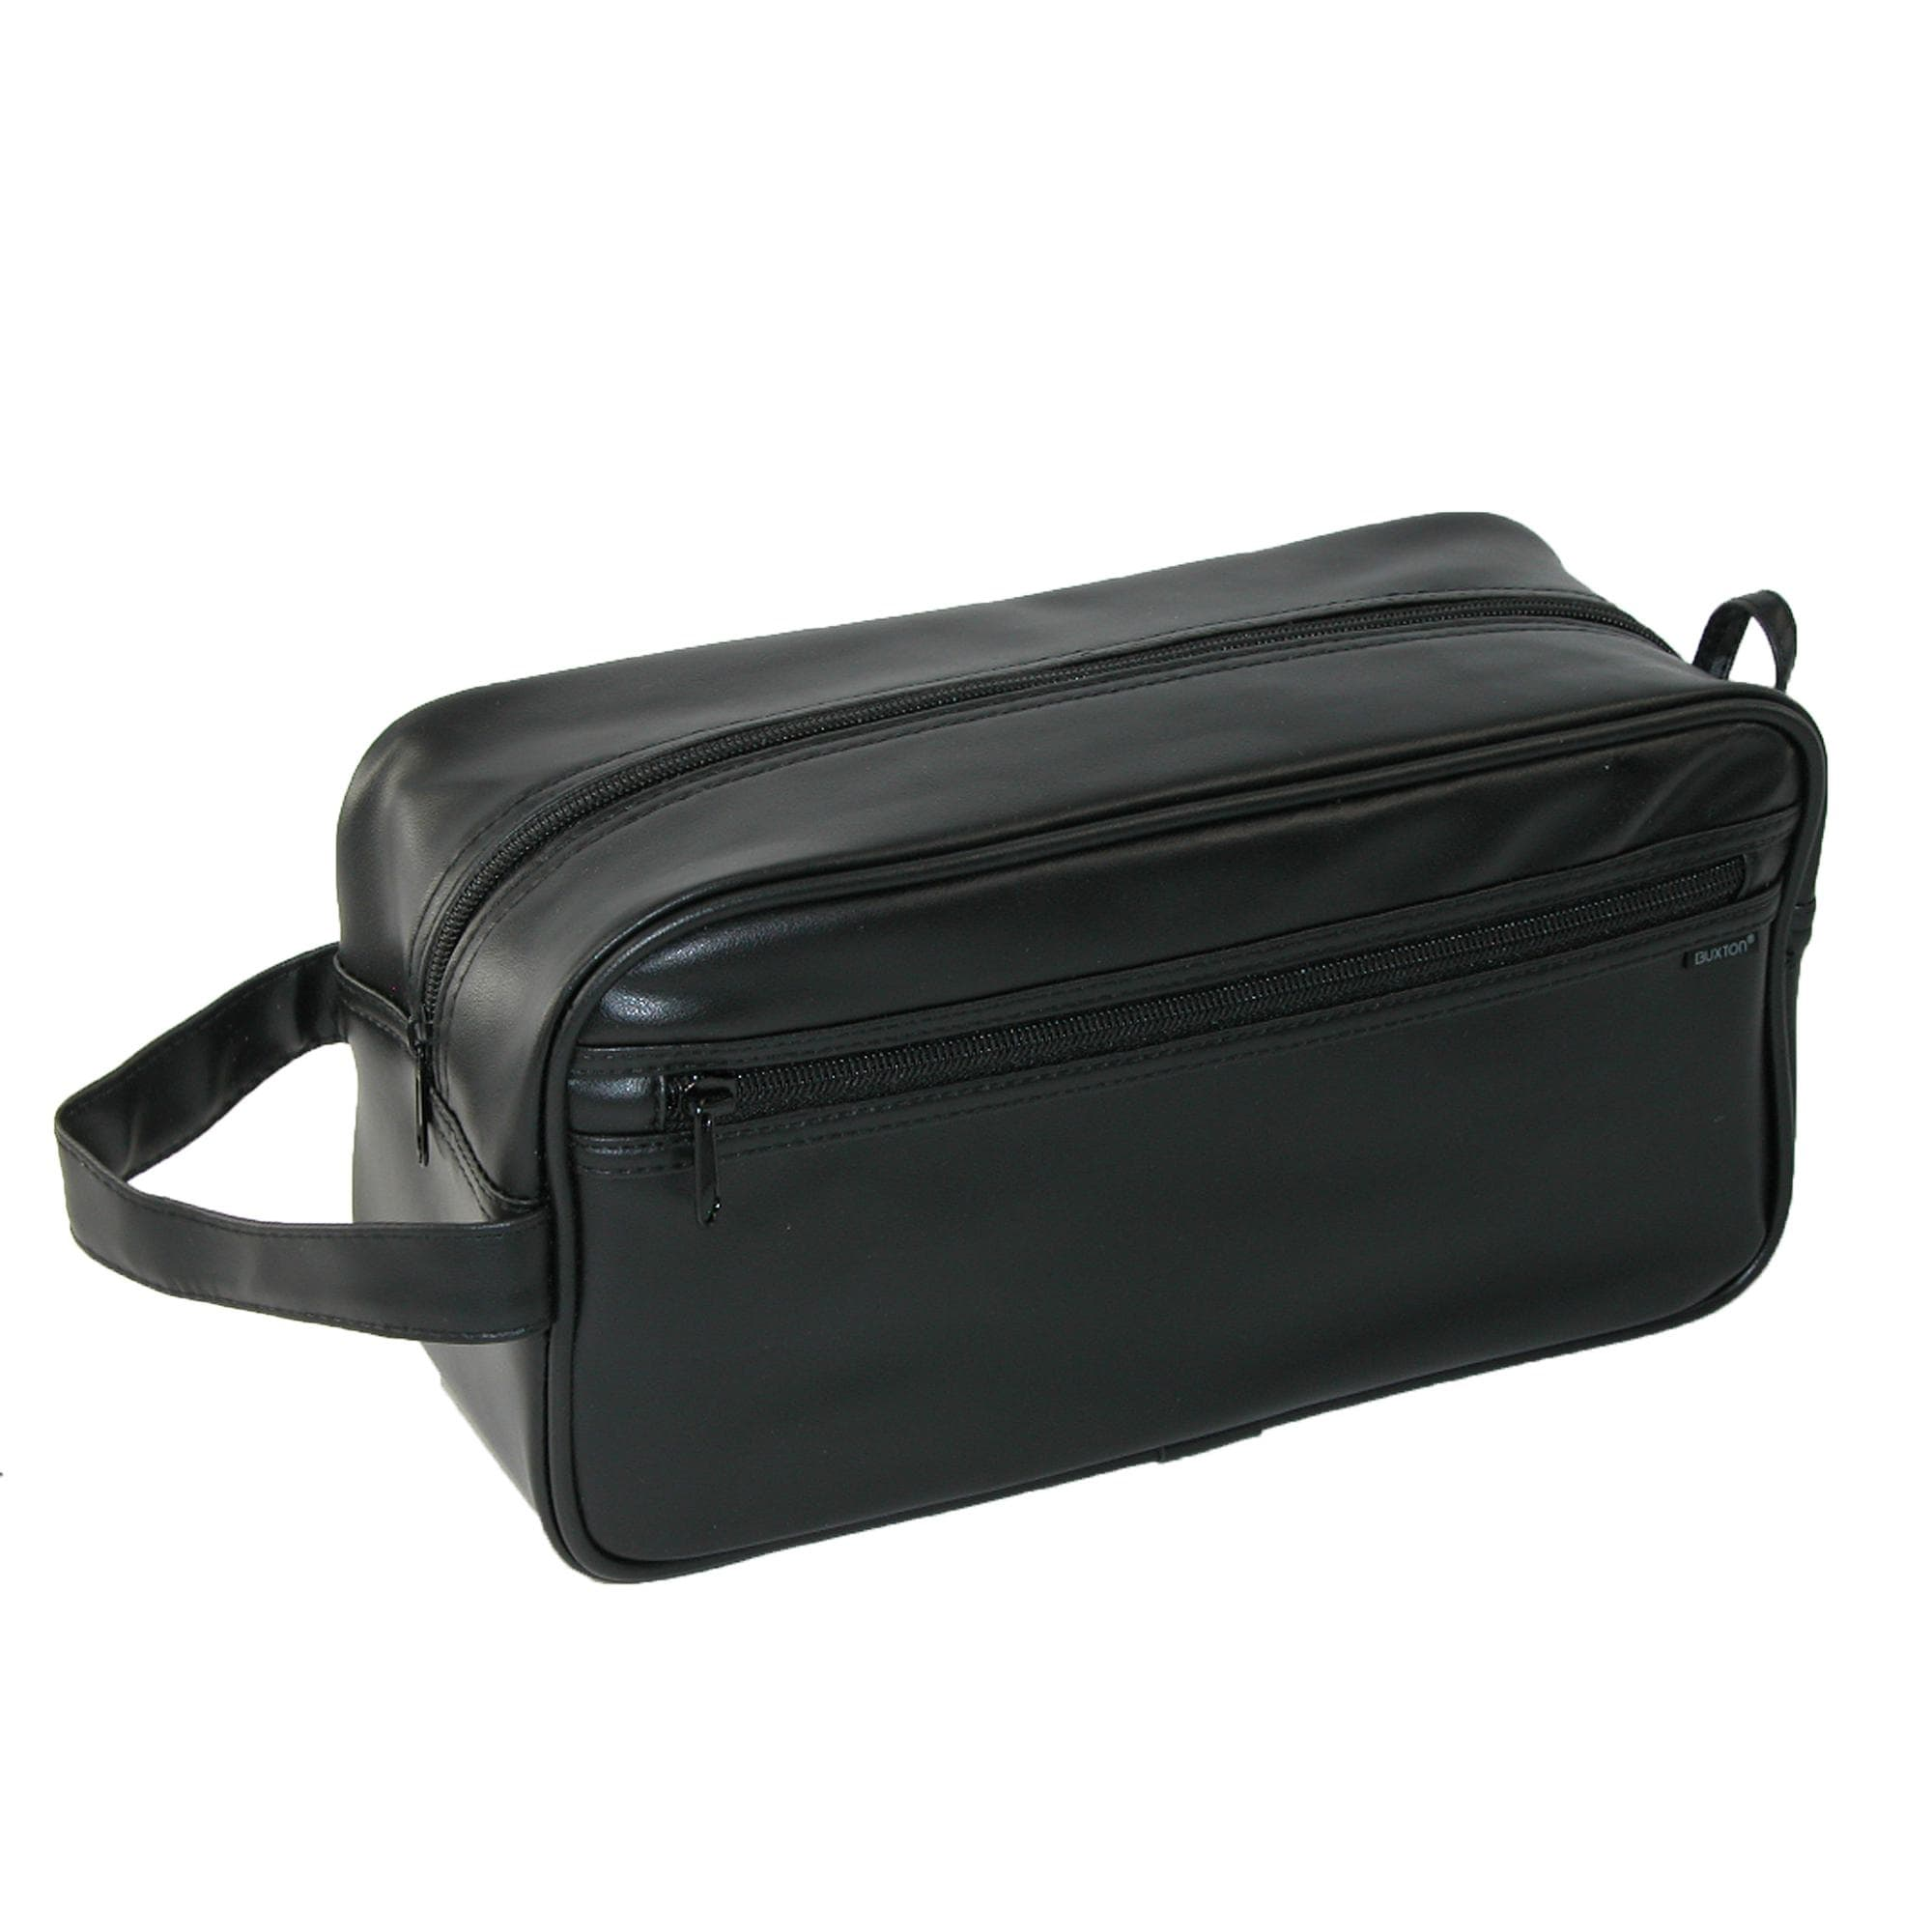 c9c4be3ae059 Shop Buxton Men s PVC Travel Toiletry Bag - Black - Free Shipping On Orders  Over  45 - Overstock - 18436135